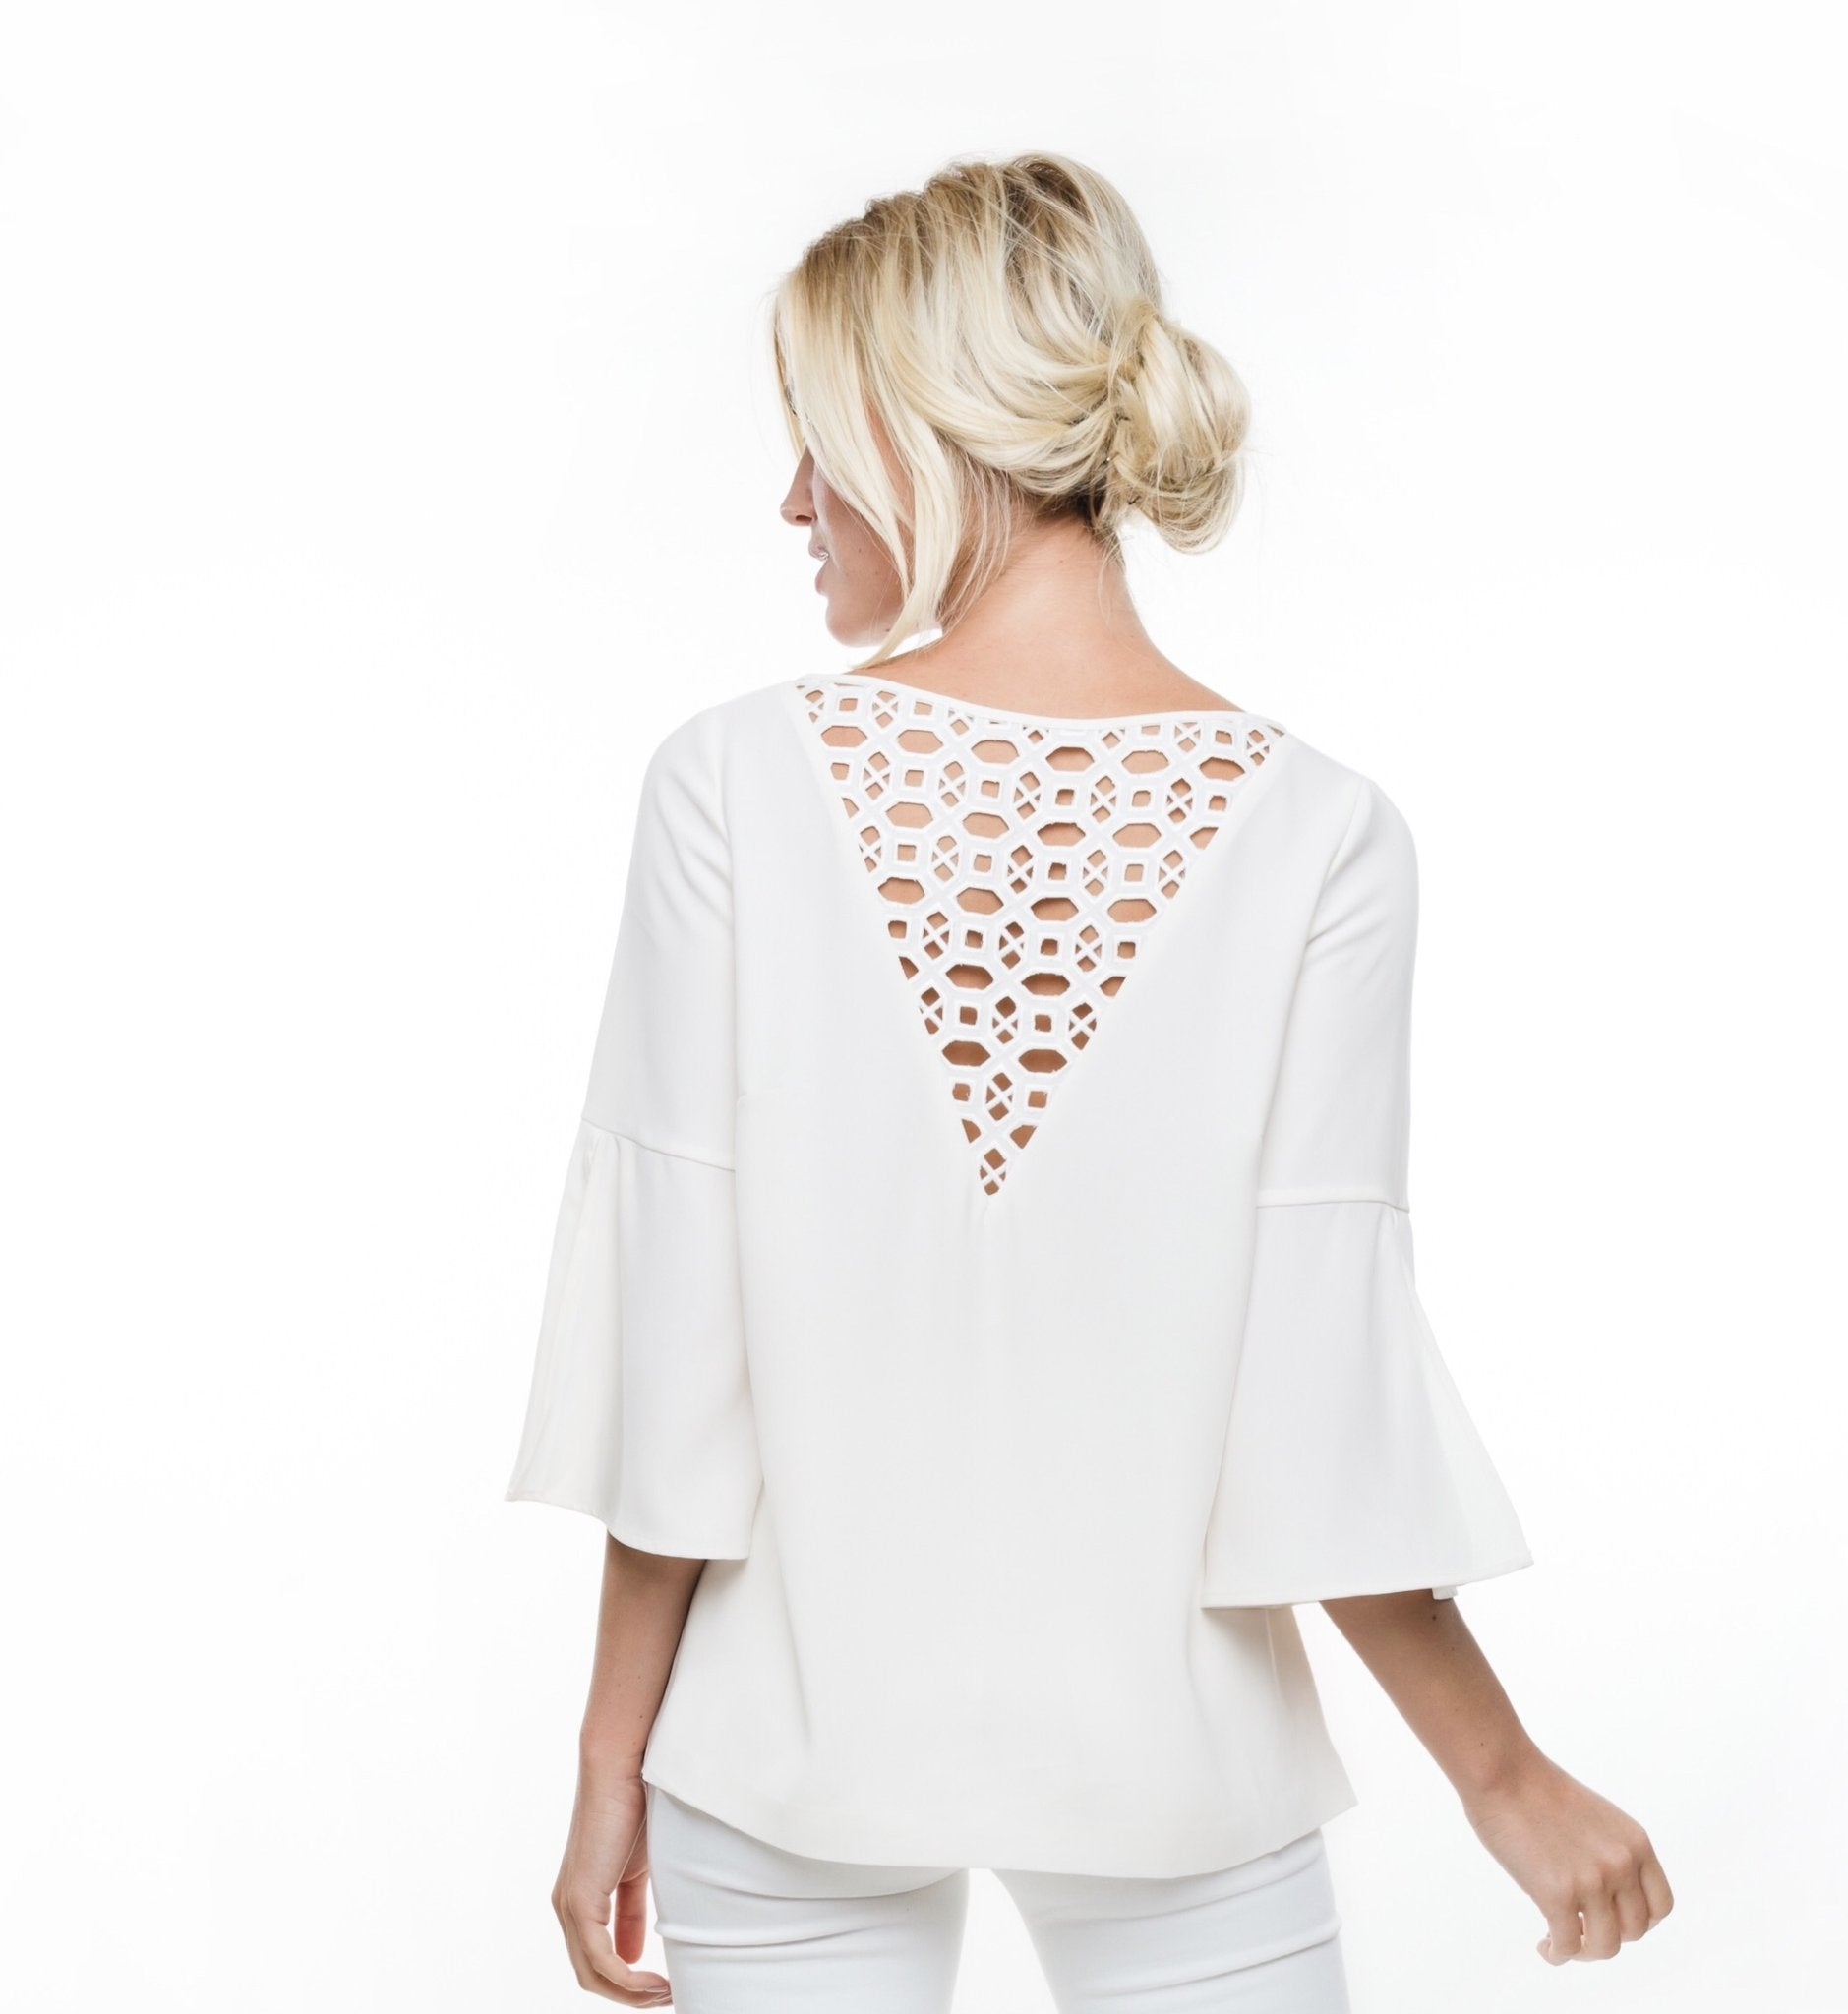 Anna Cate Bella Top-White